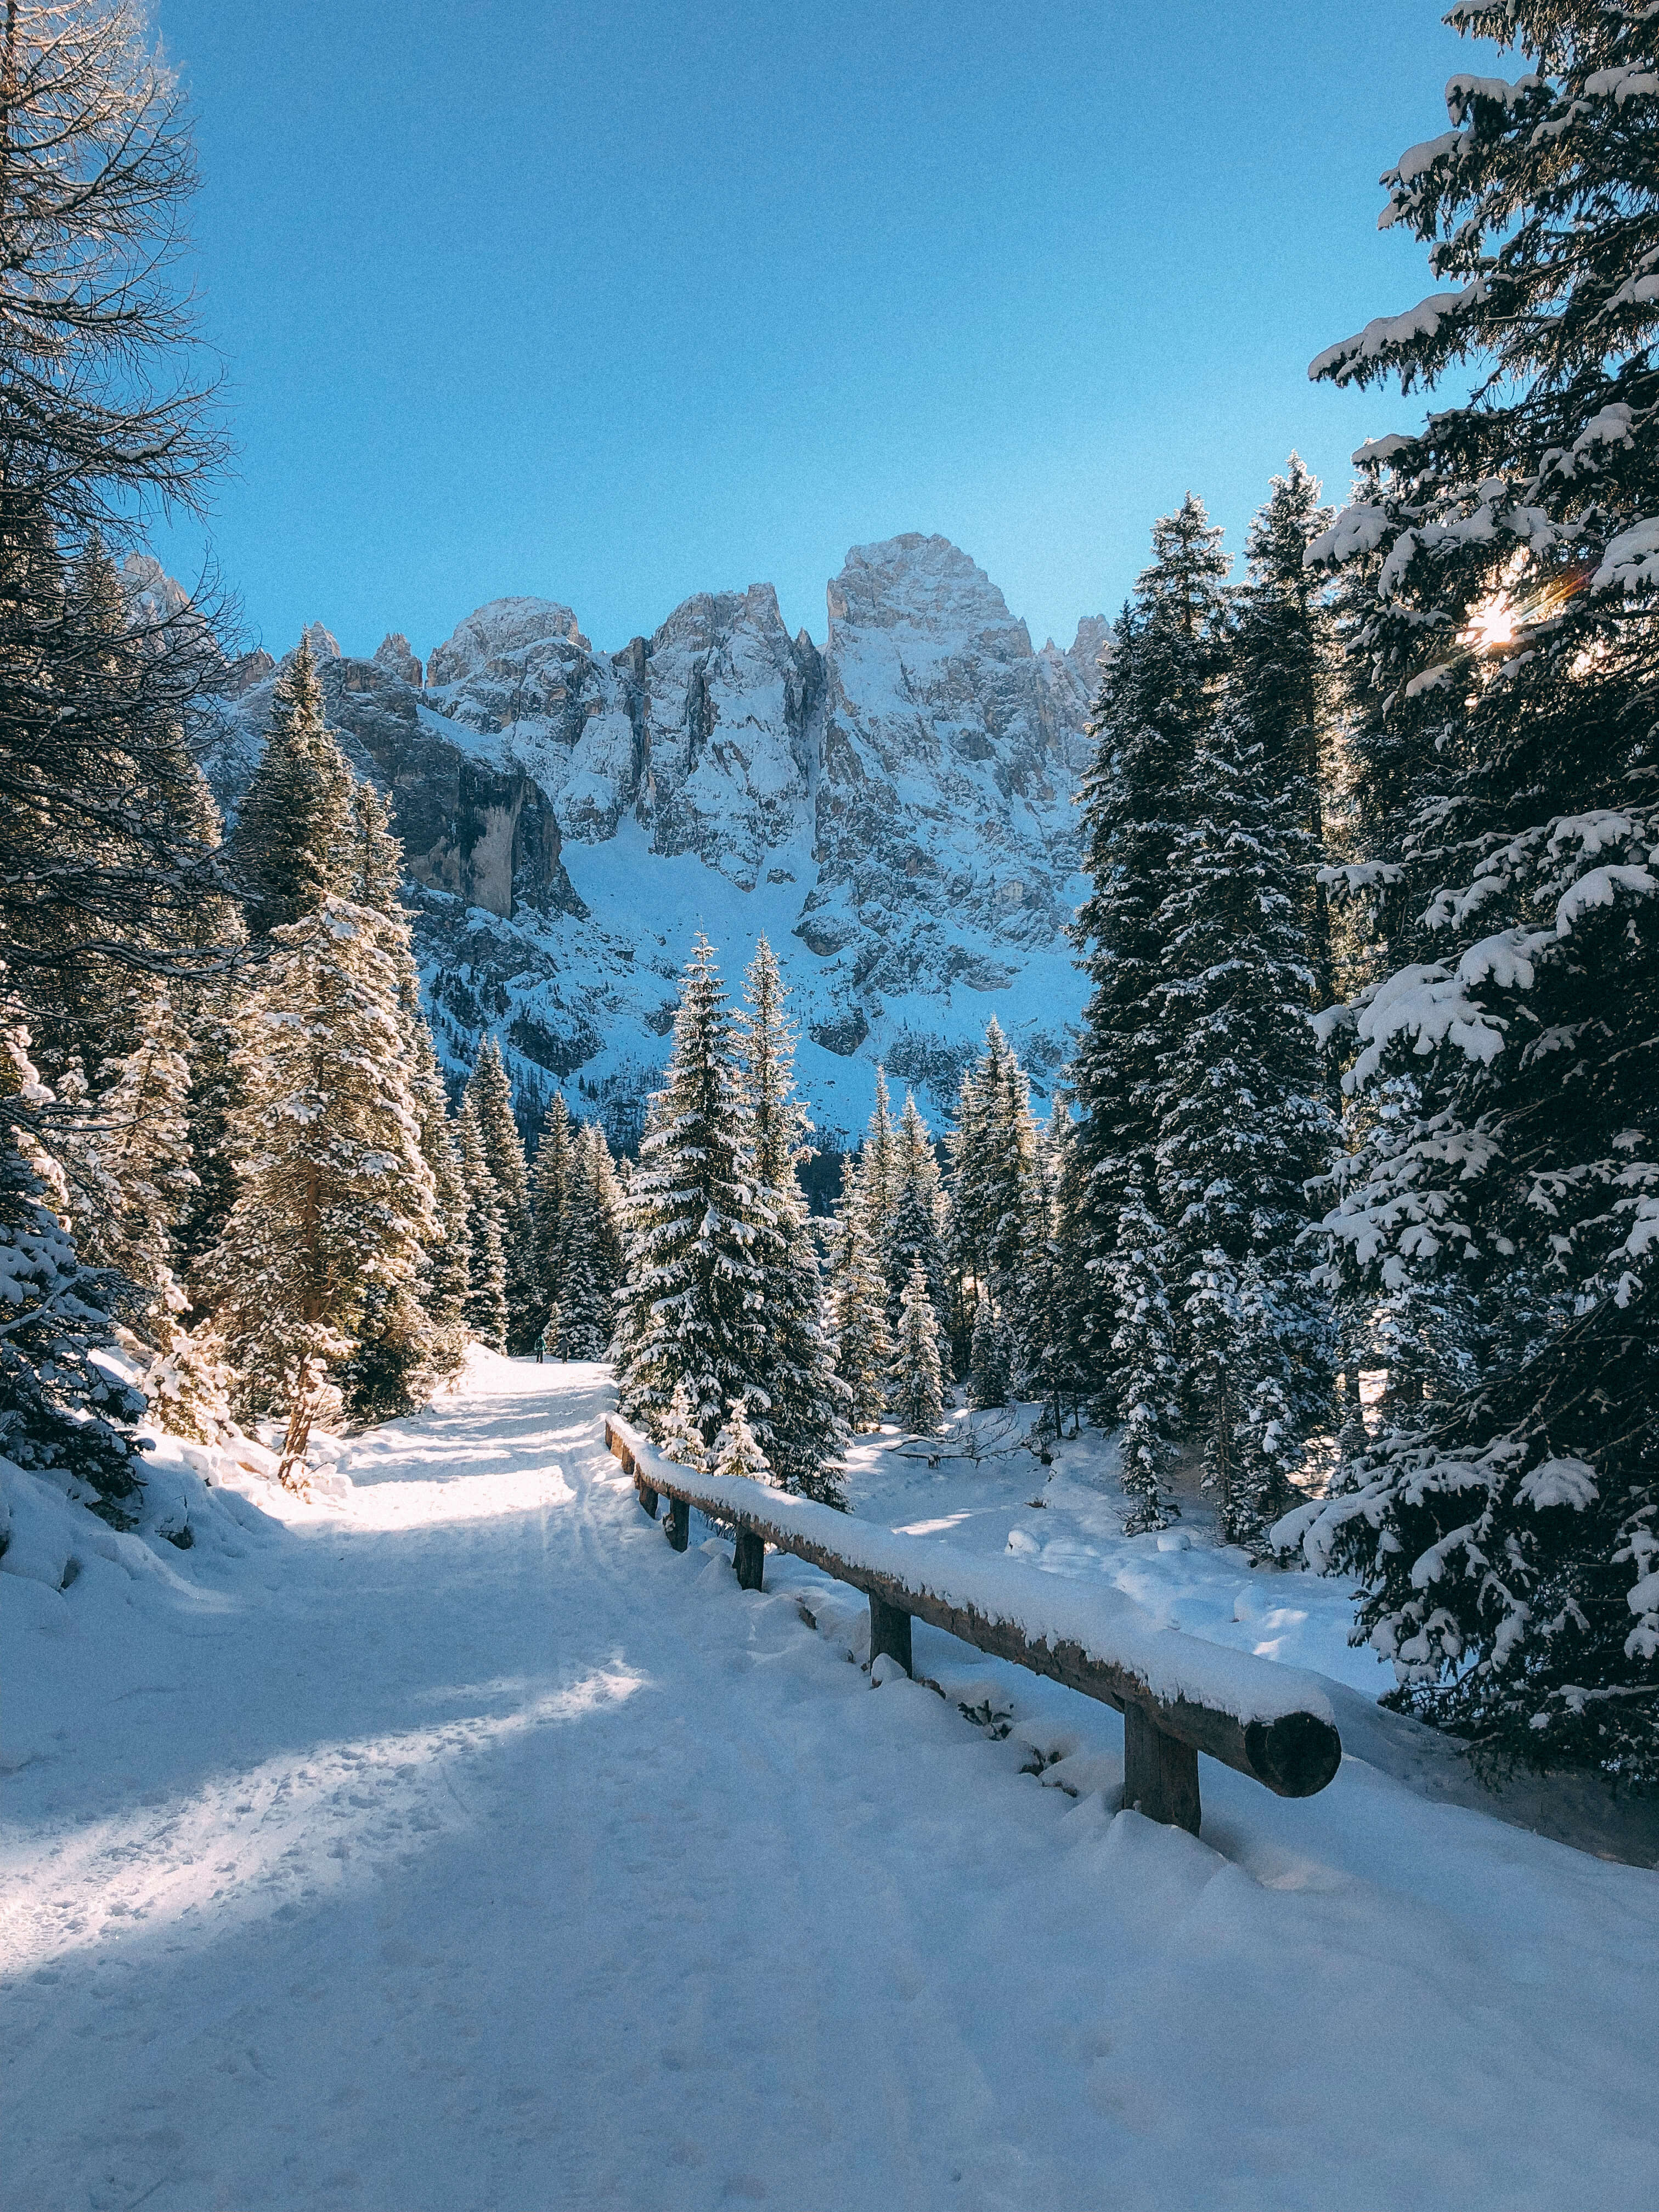 5 Outdoor Activities You Should Try This Winter – Outside This Small Town